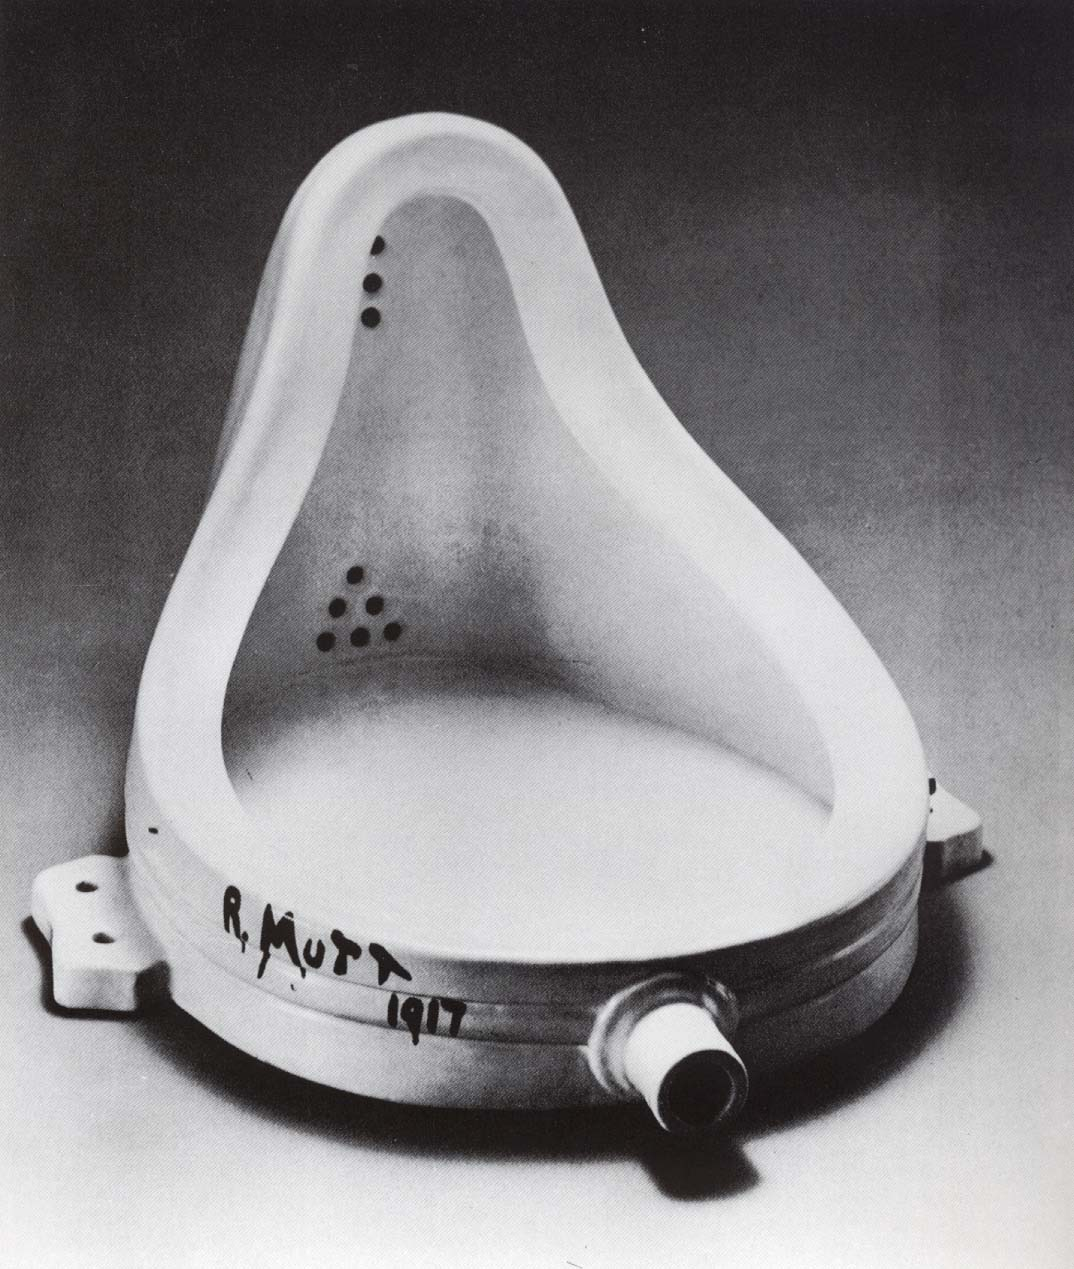 https://i1.wp.com/upload.wikimedia.org/wikipedia/commons/c/ce/Marcel_Duchamp.jpg